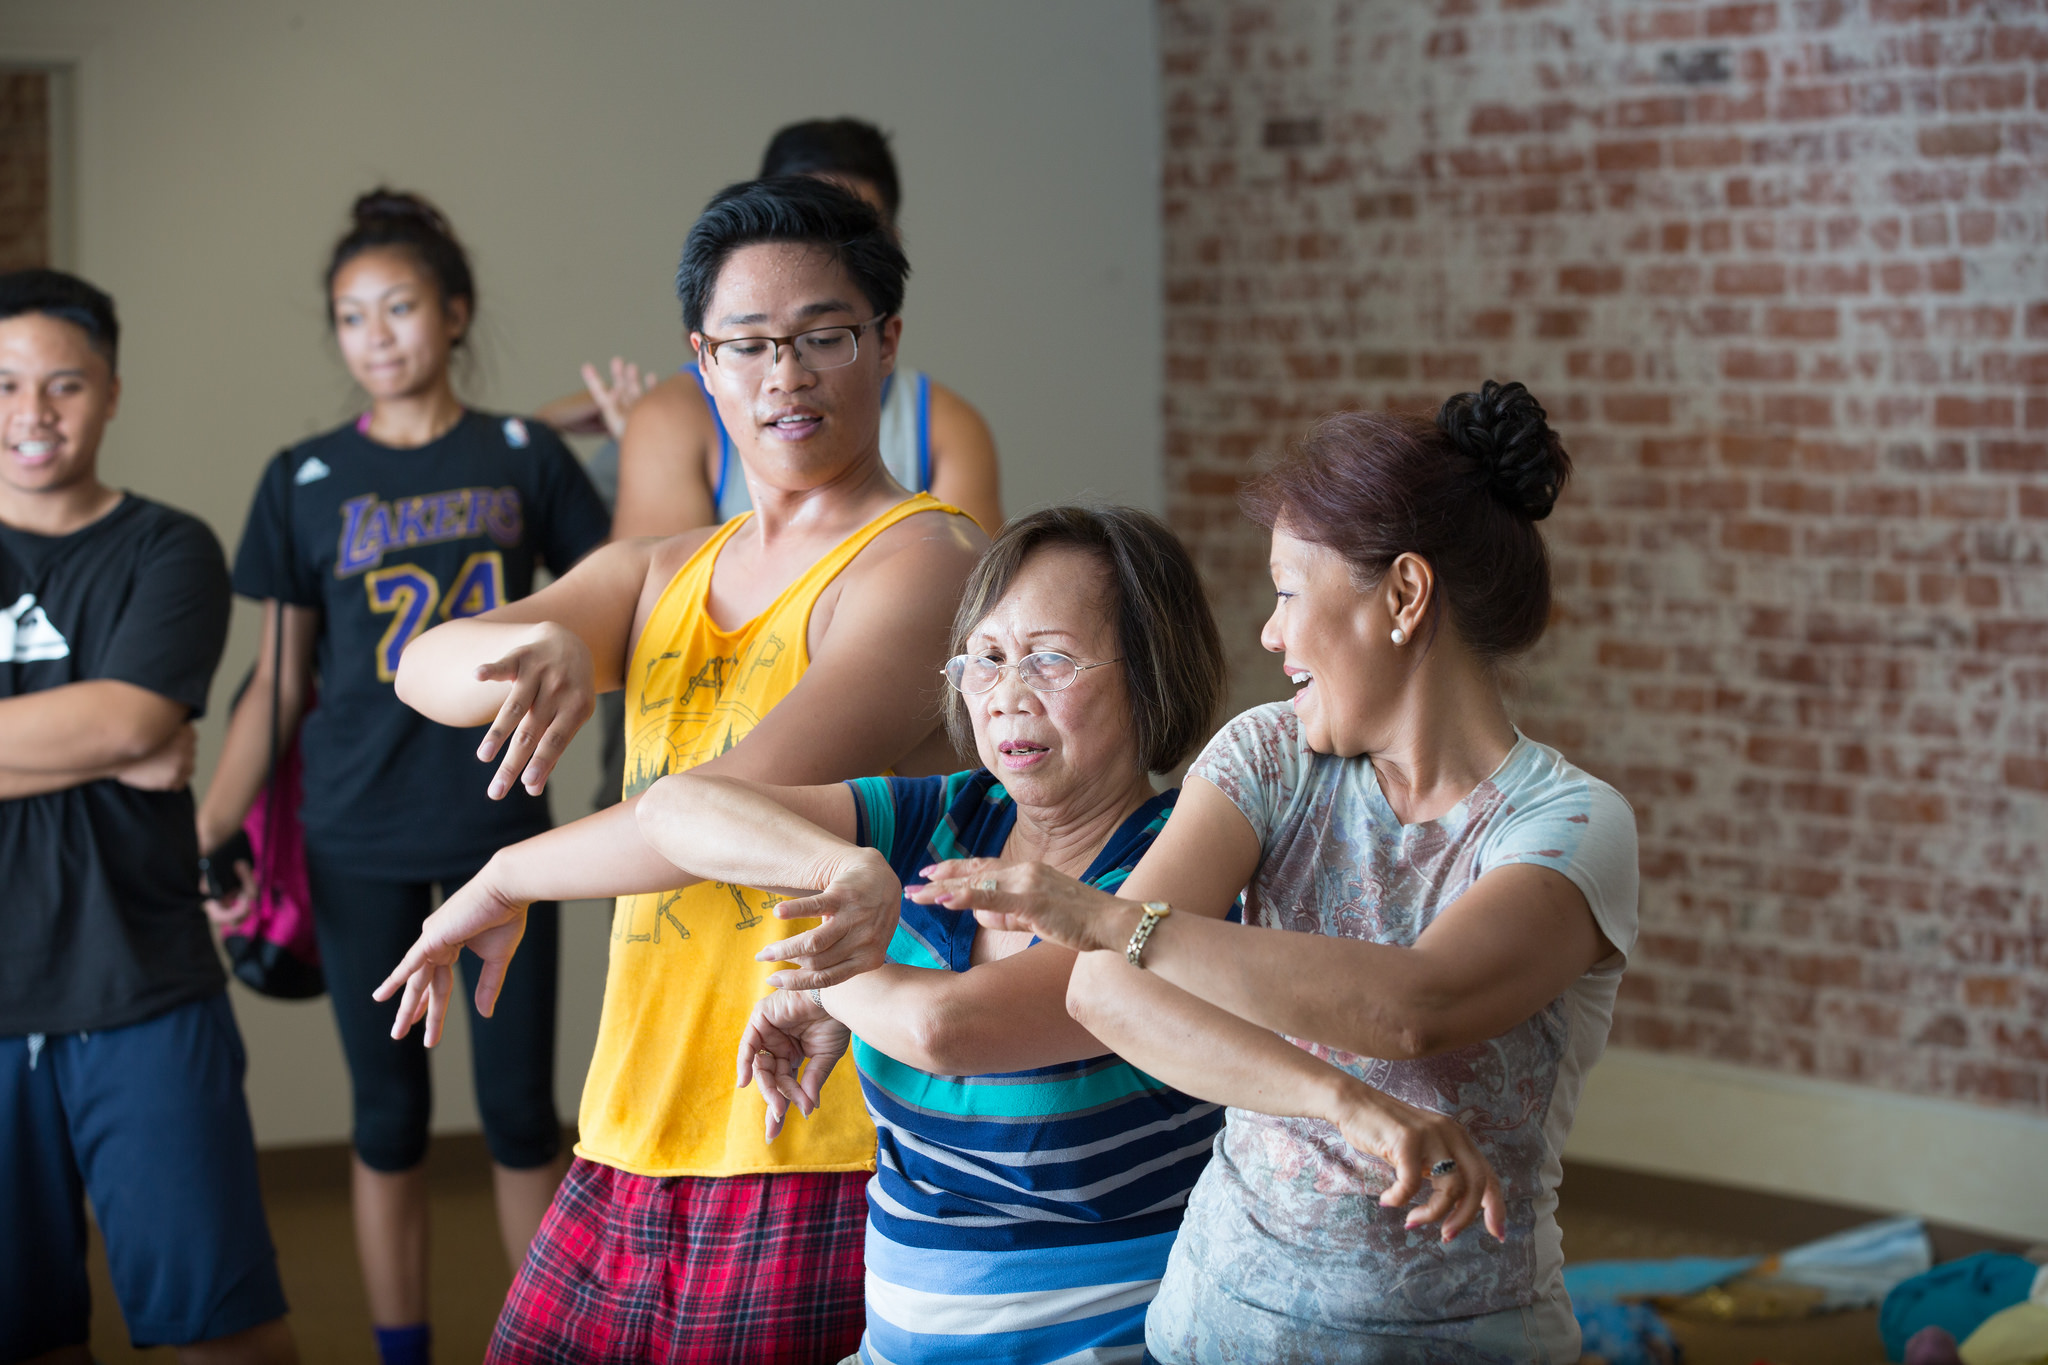 The Little Manila Dance Collective is created to revive Filipino traditional dance in Stockton.